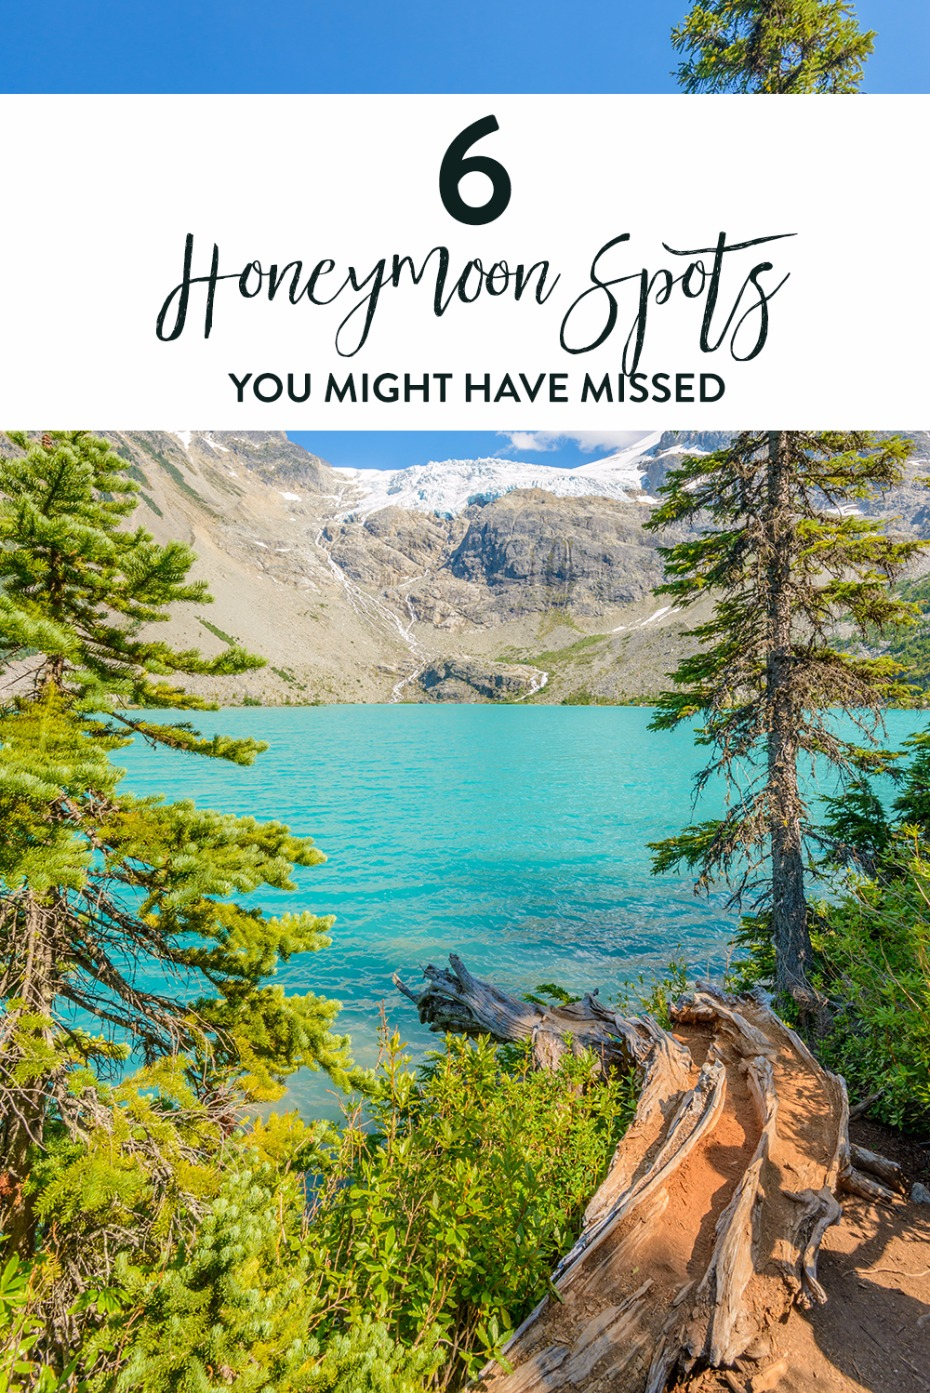 6 honeymoon spots that you may have missed